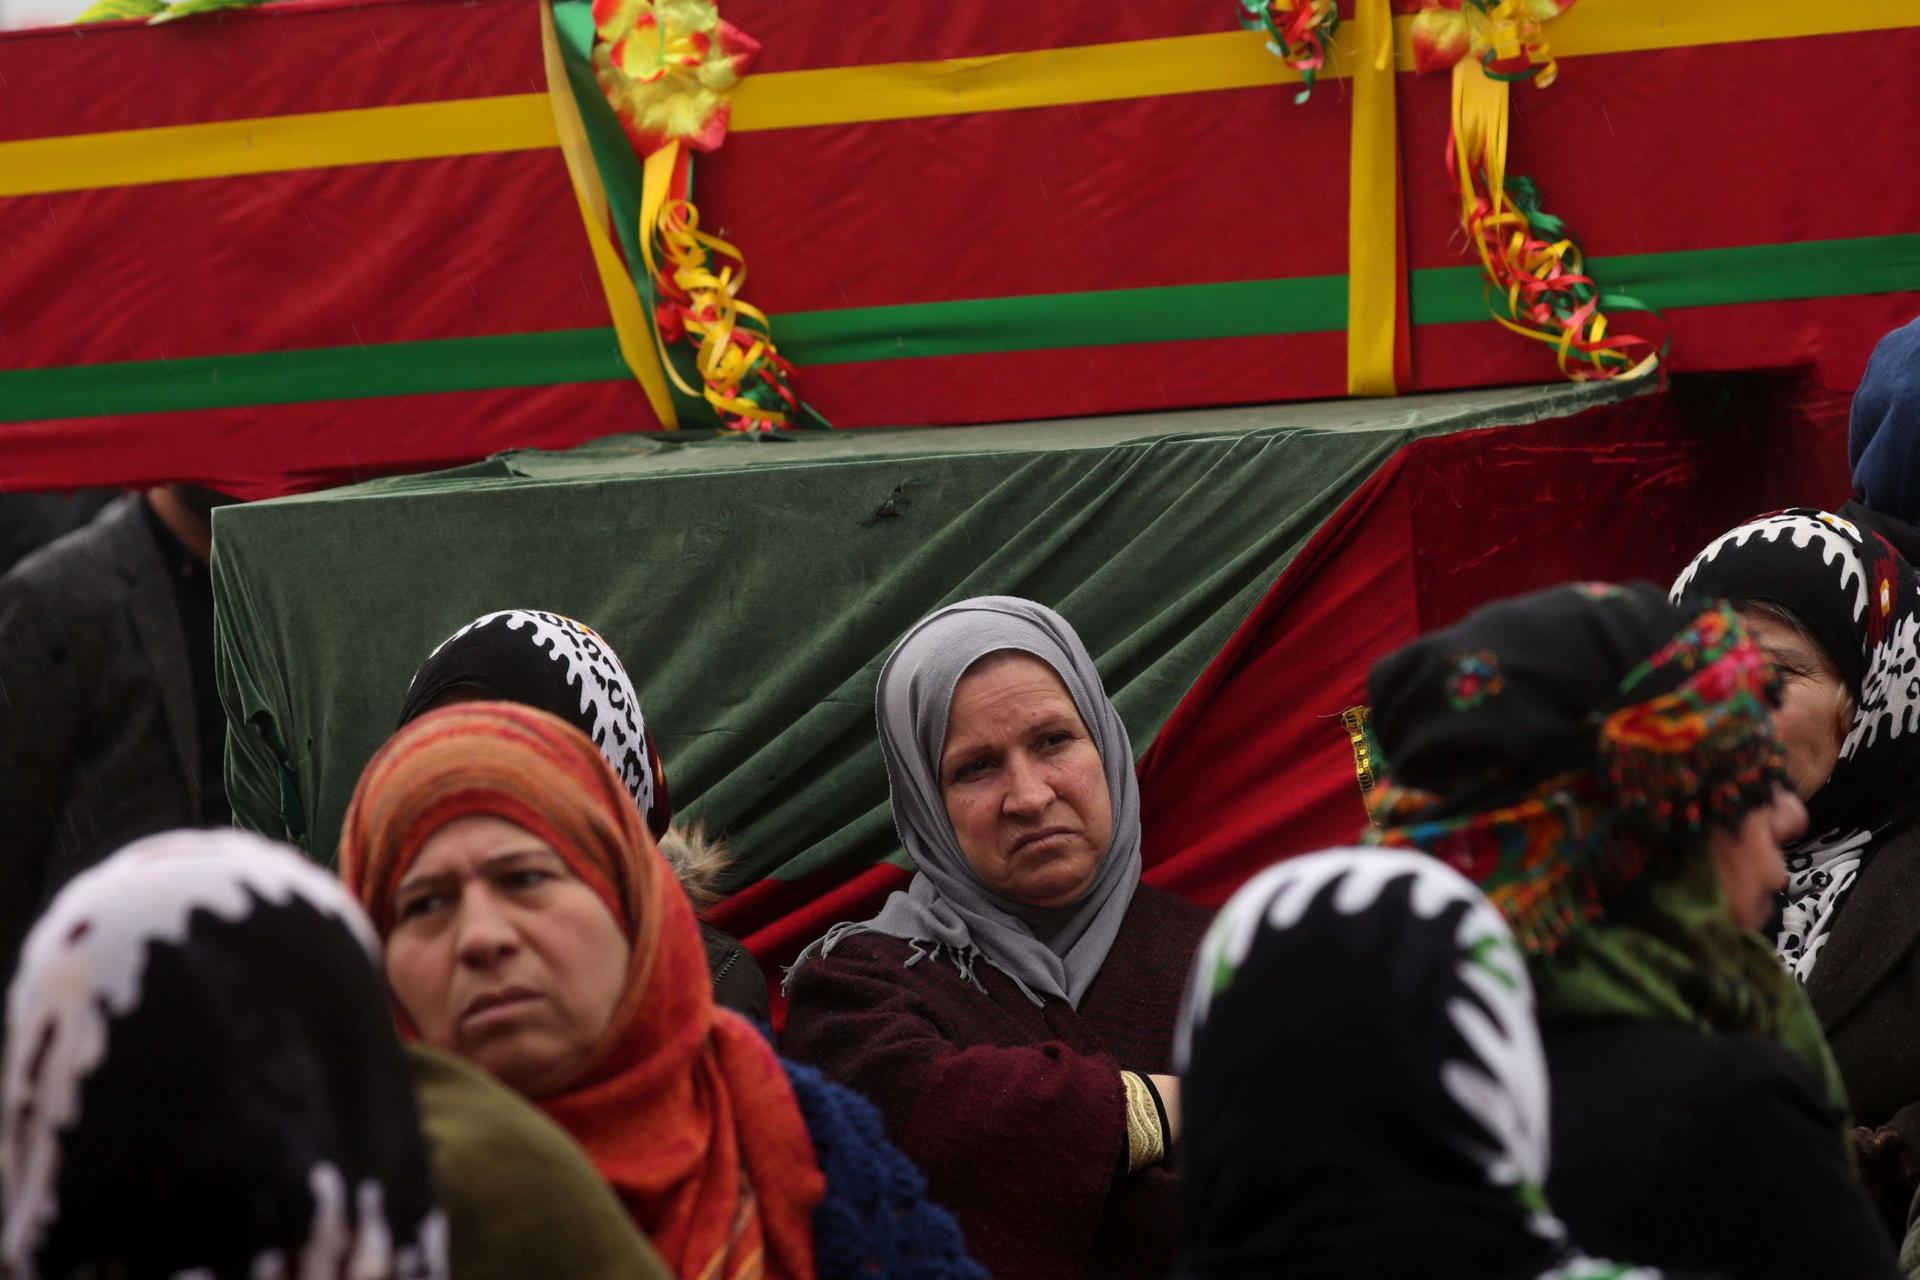 Mourners surround the coffin of a local official, who fighters from the Syrian Democratic Forces (SDF) say was assassinated in a Kurdish-held area in the countryside of Deir Ezzor, during his funeral in northeastern Syrian Kurdish-majority city of Qamishli, on December 31, 2018.